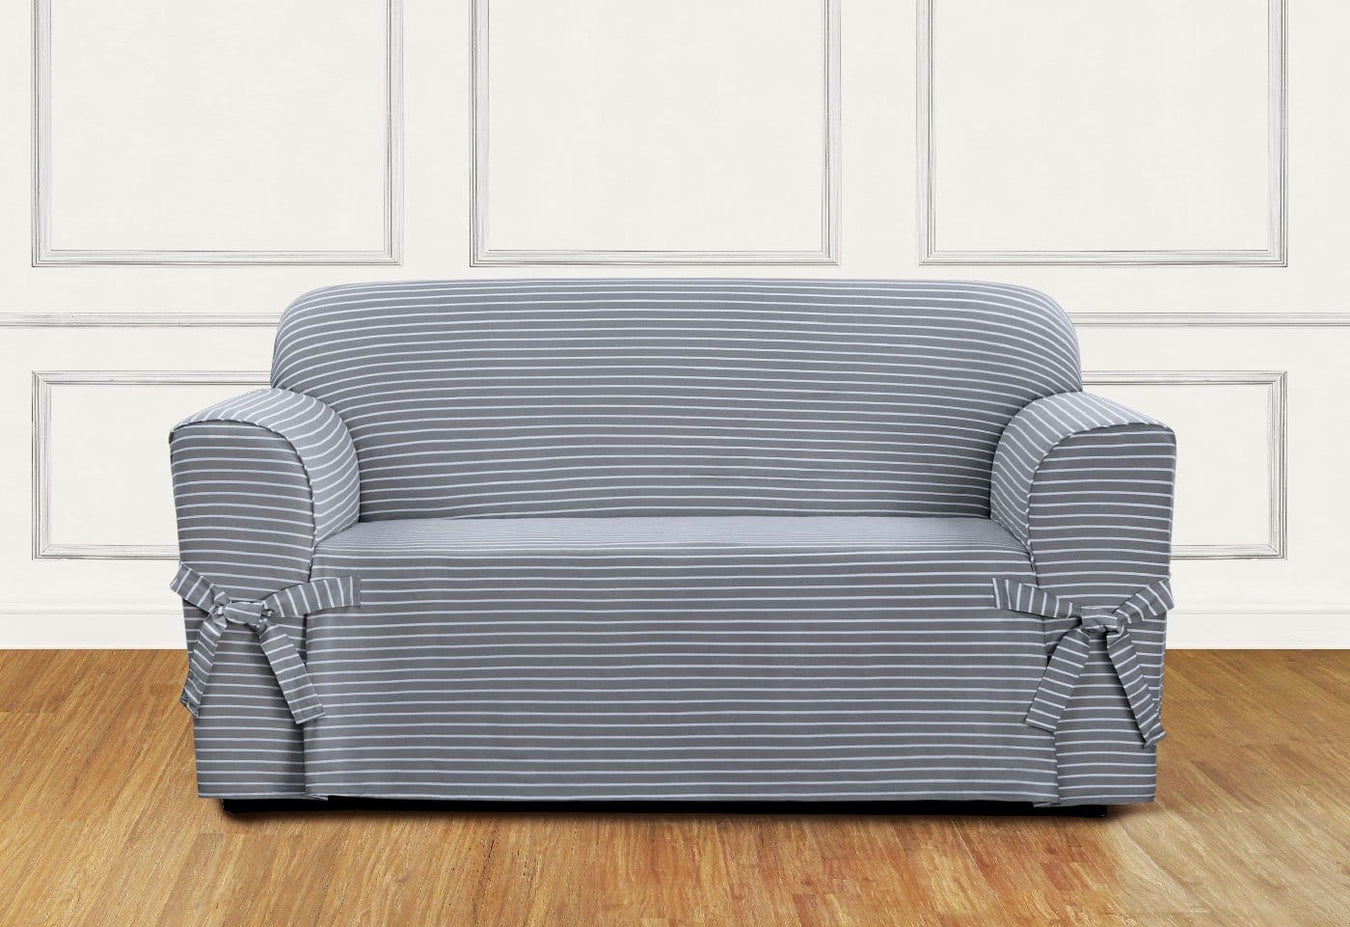 Horizontal Club Stripe One Piece Loveseat Slipcover with Ties